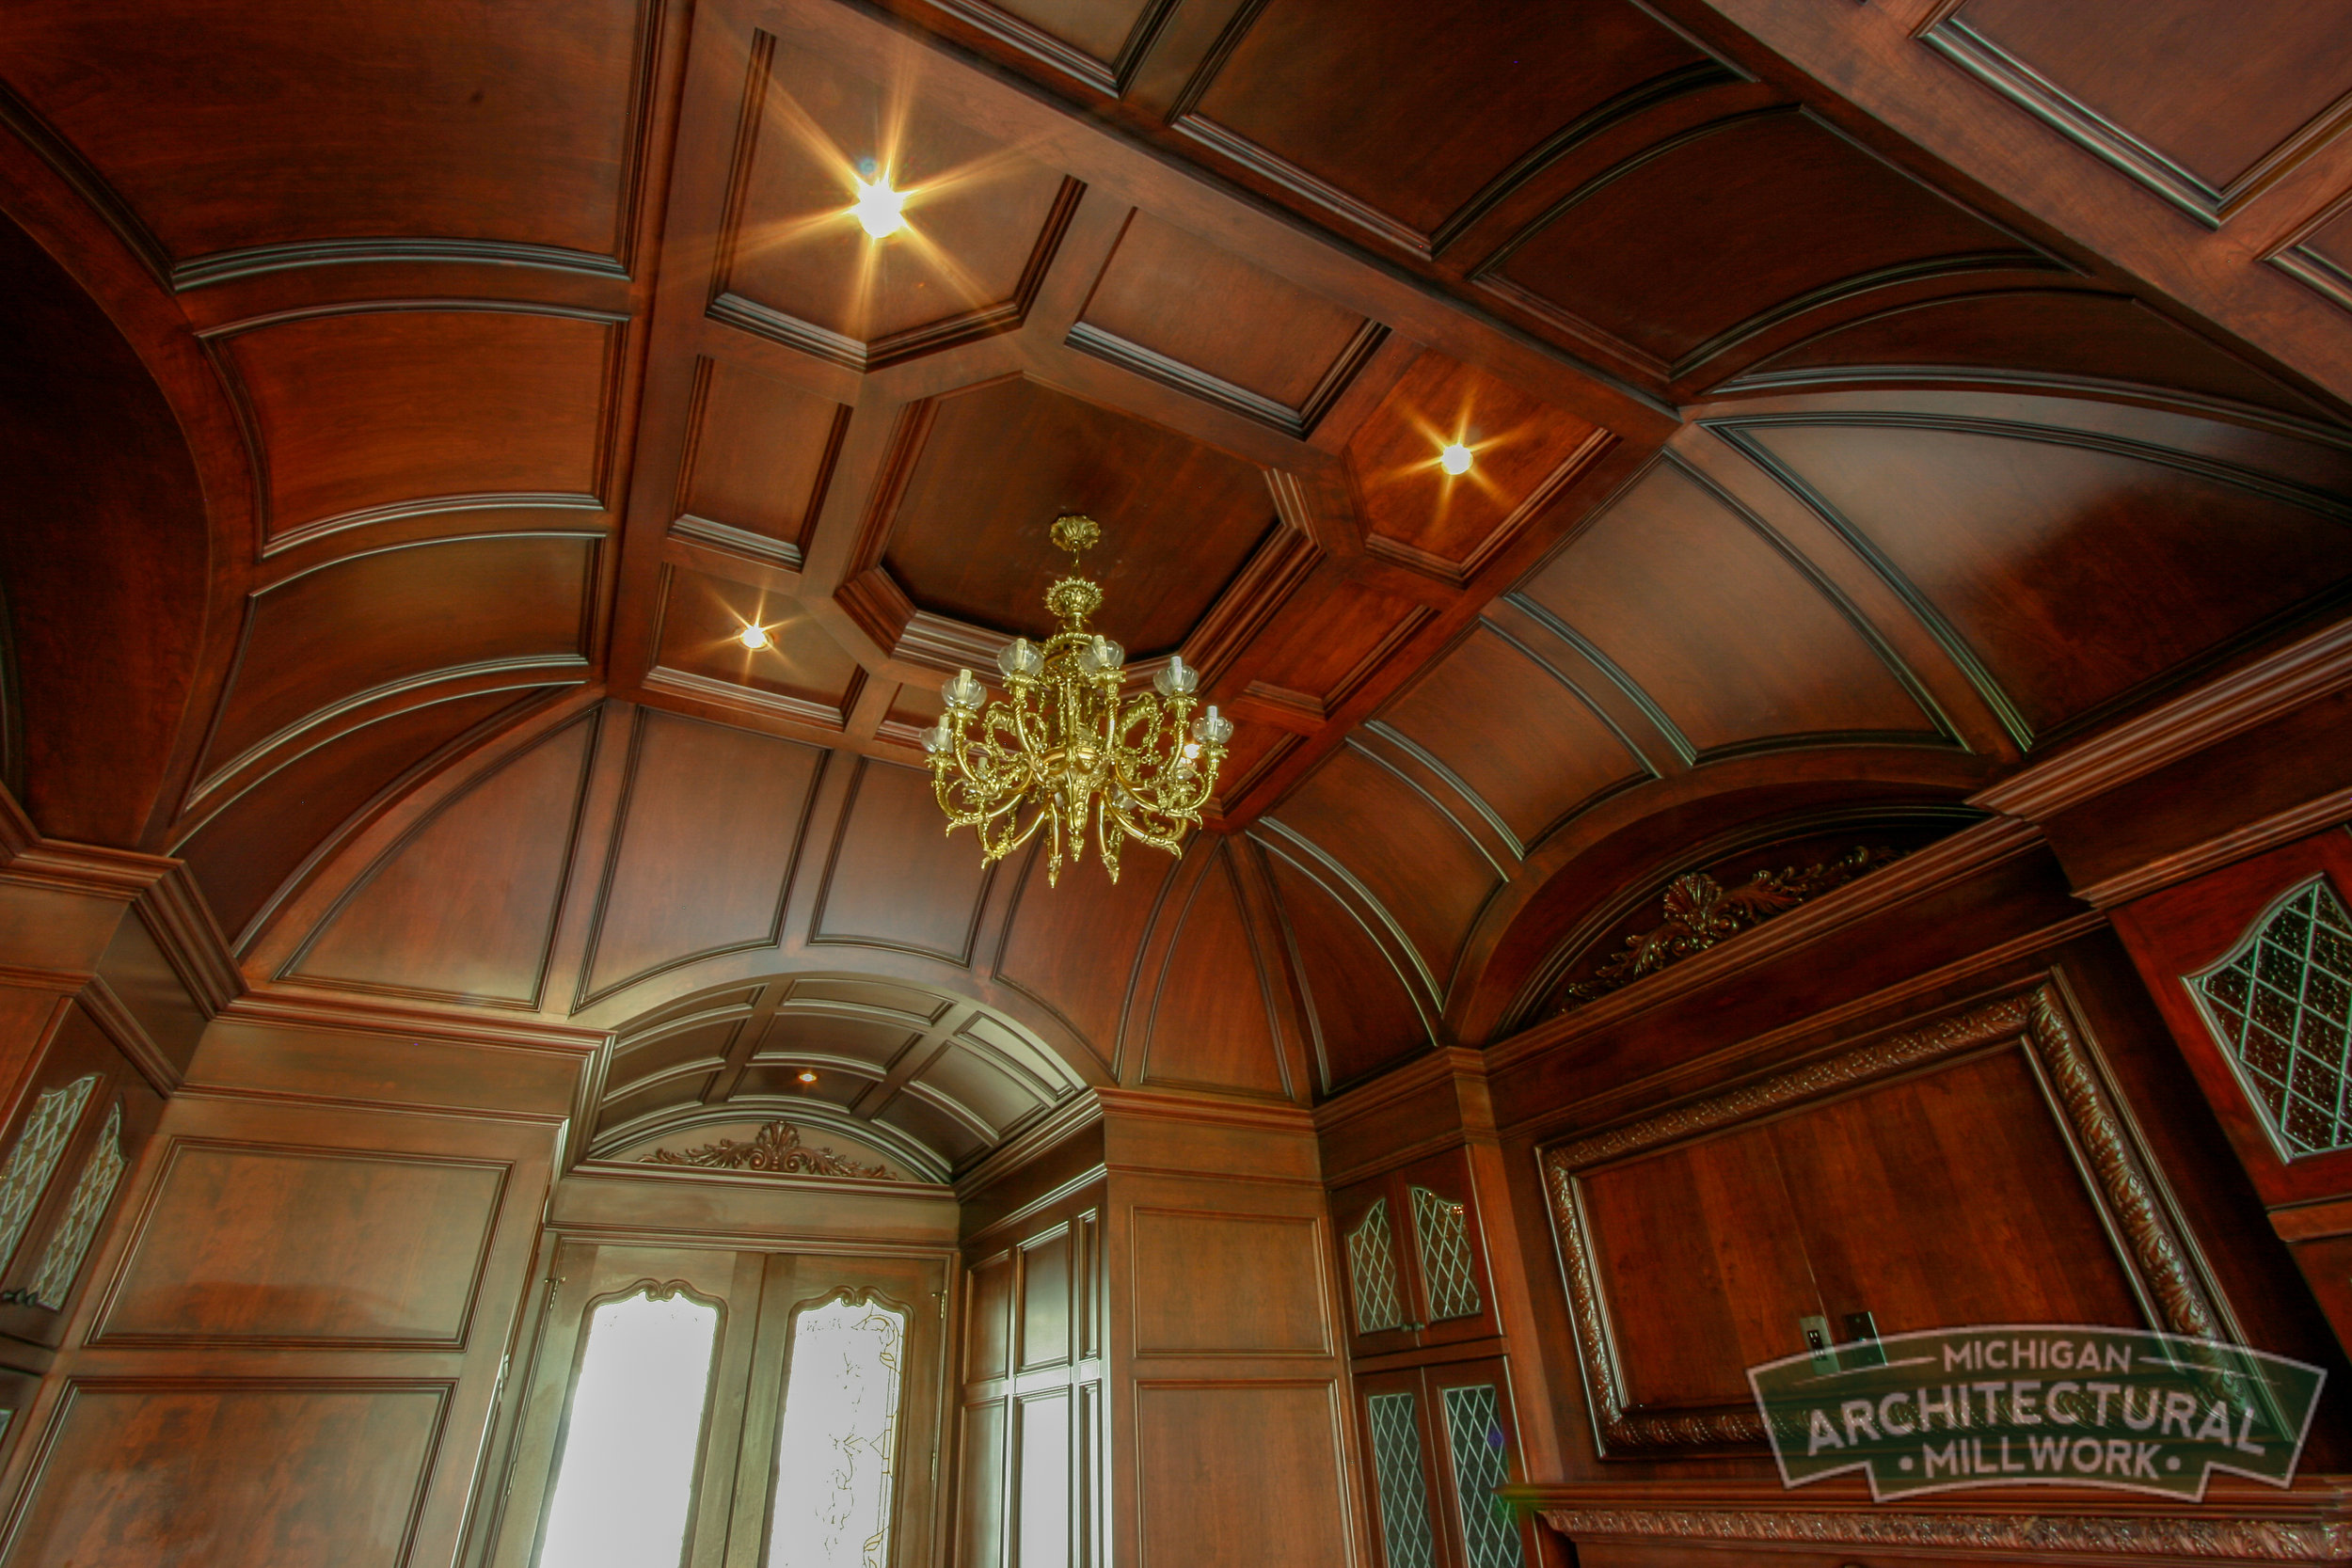 Michigan Architectural Millwork- Moulding and Millwork Photo-185.jpg